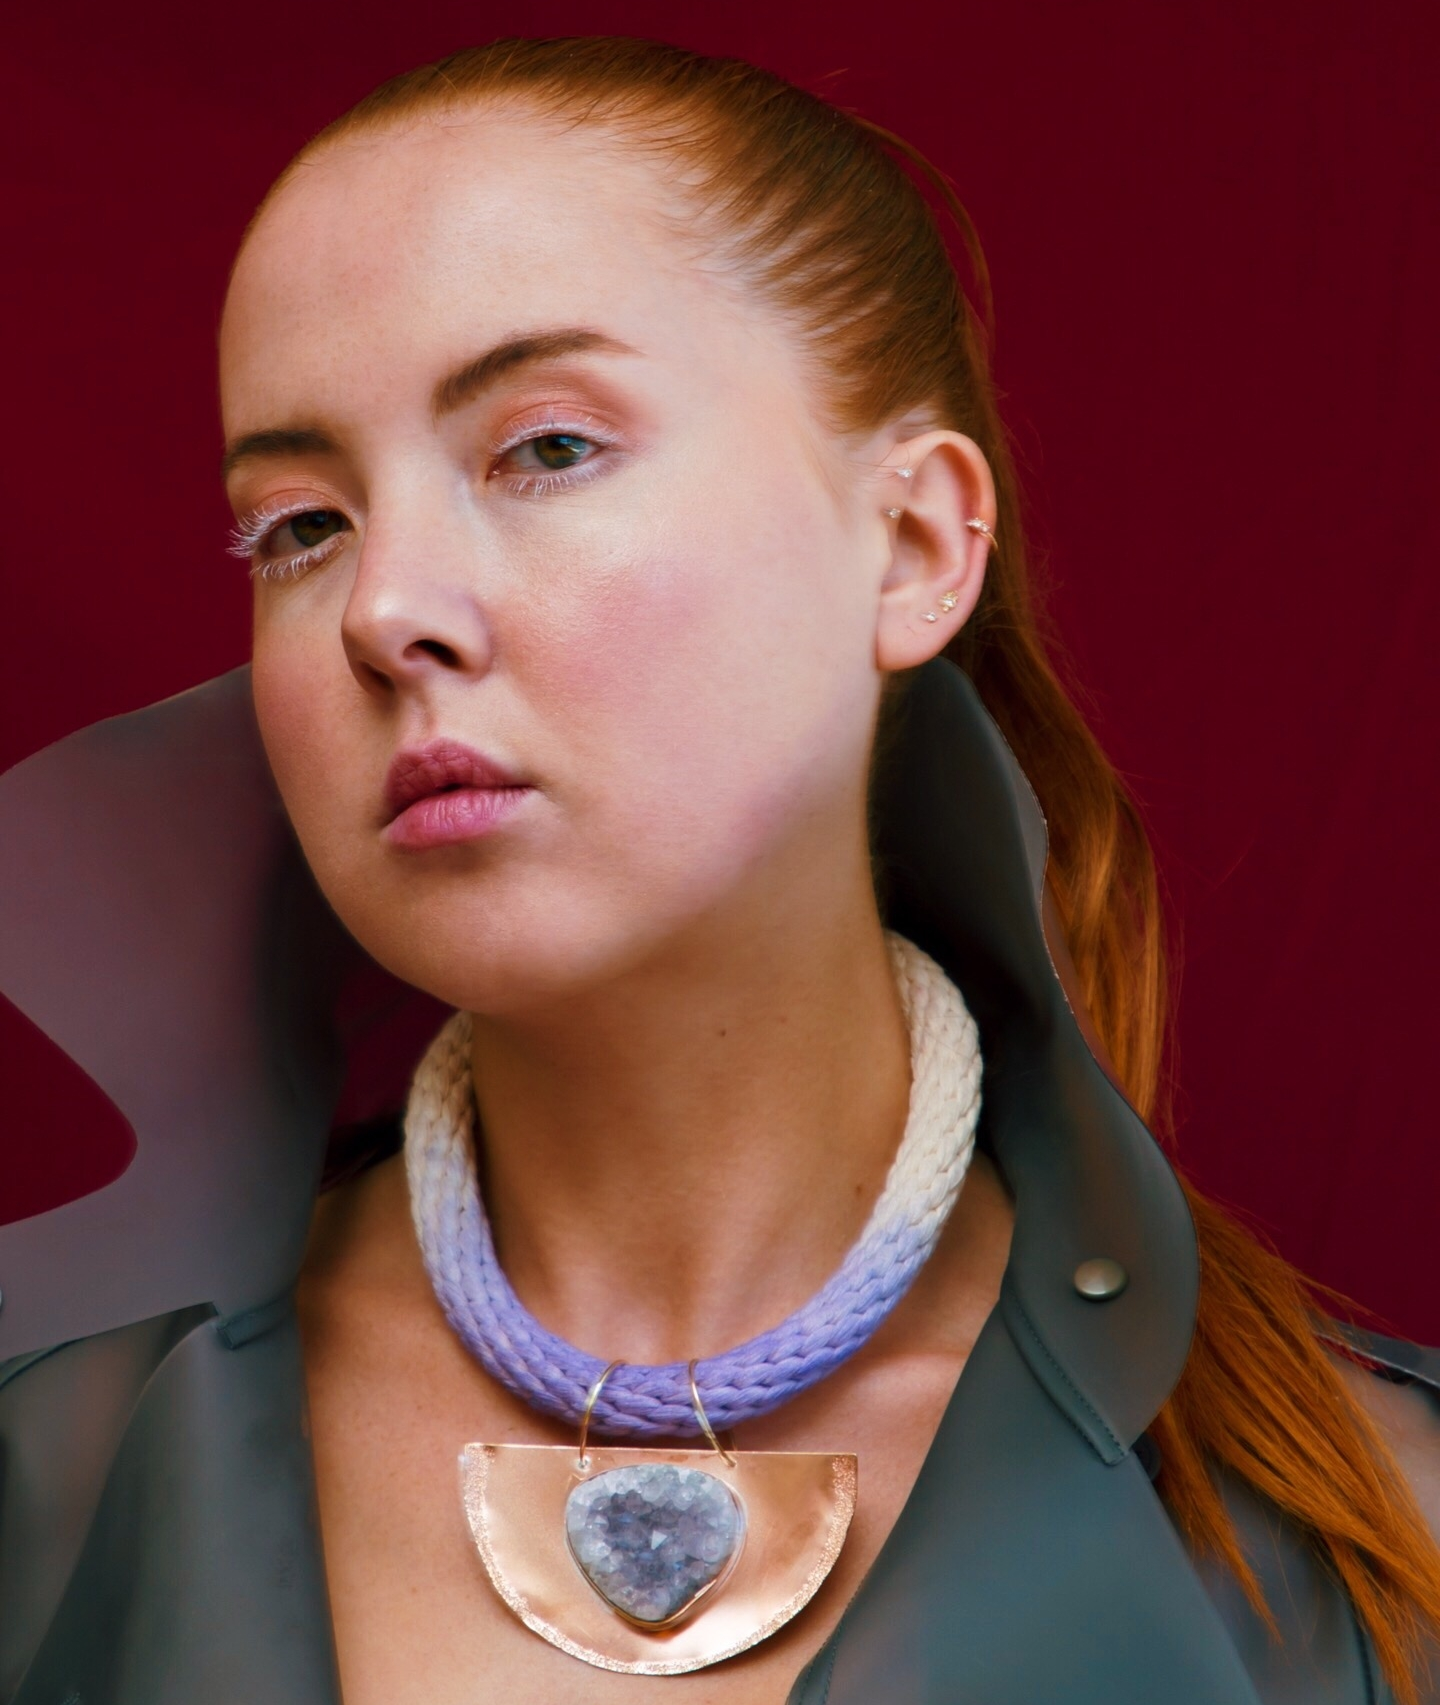 Statement Necklace: Jewelry that makes Anna feel strongest